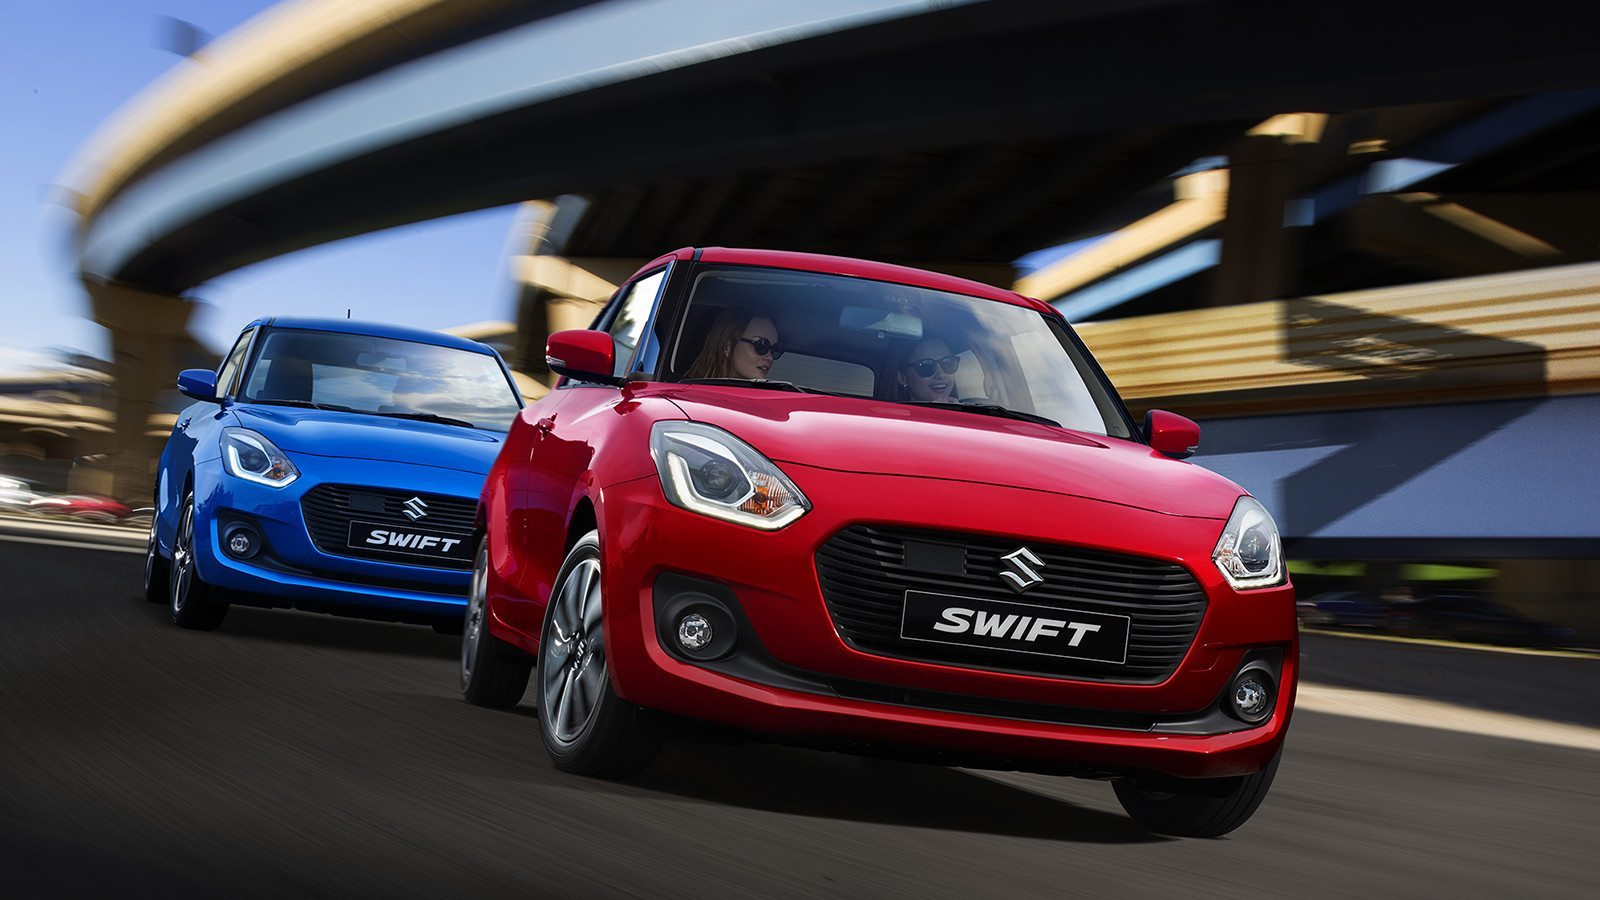 Suzuki Swift hatchback Dubai UAE